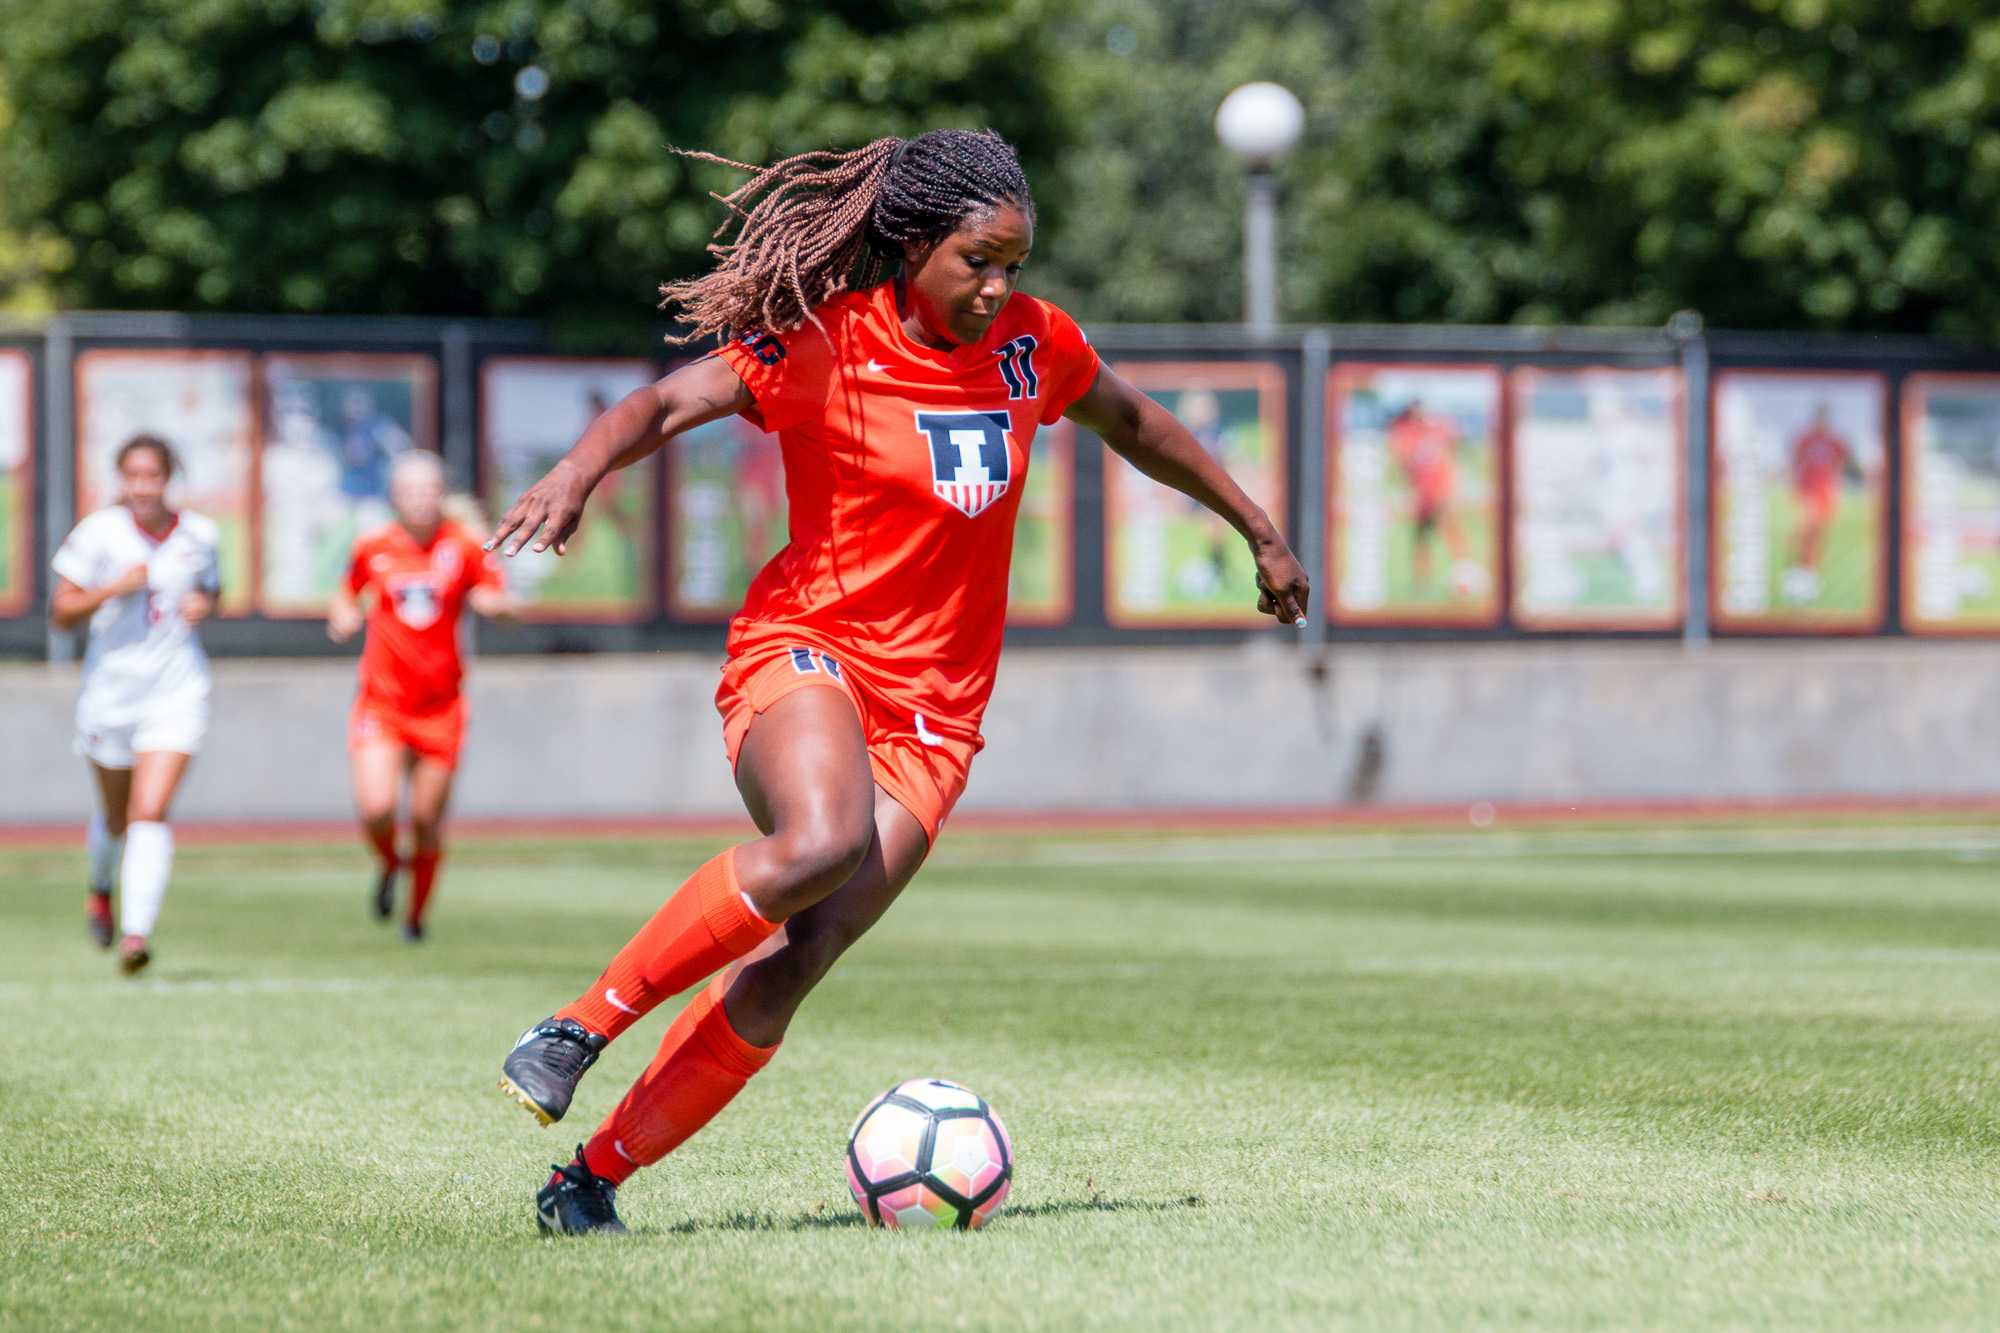 Illinois' Patricia George dribbles the ball down the field during the game against Illinois State at Illnois Soccer Stadium on Sunday, August 21. The Illini won 1-0.